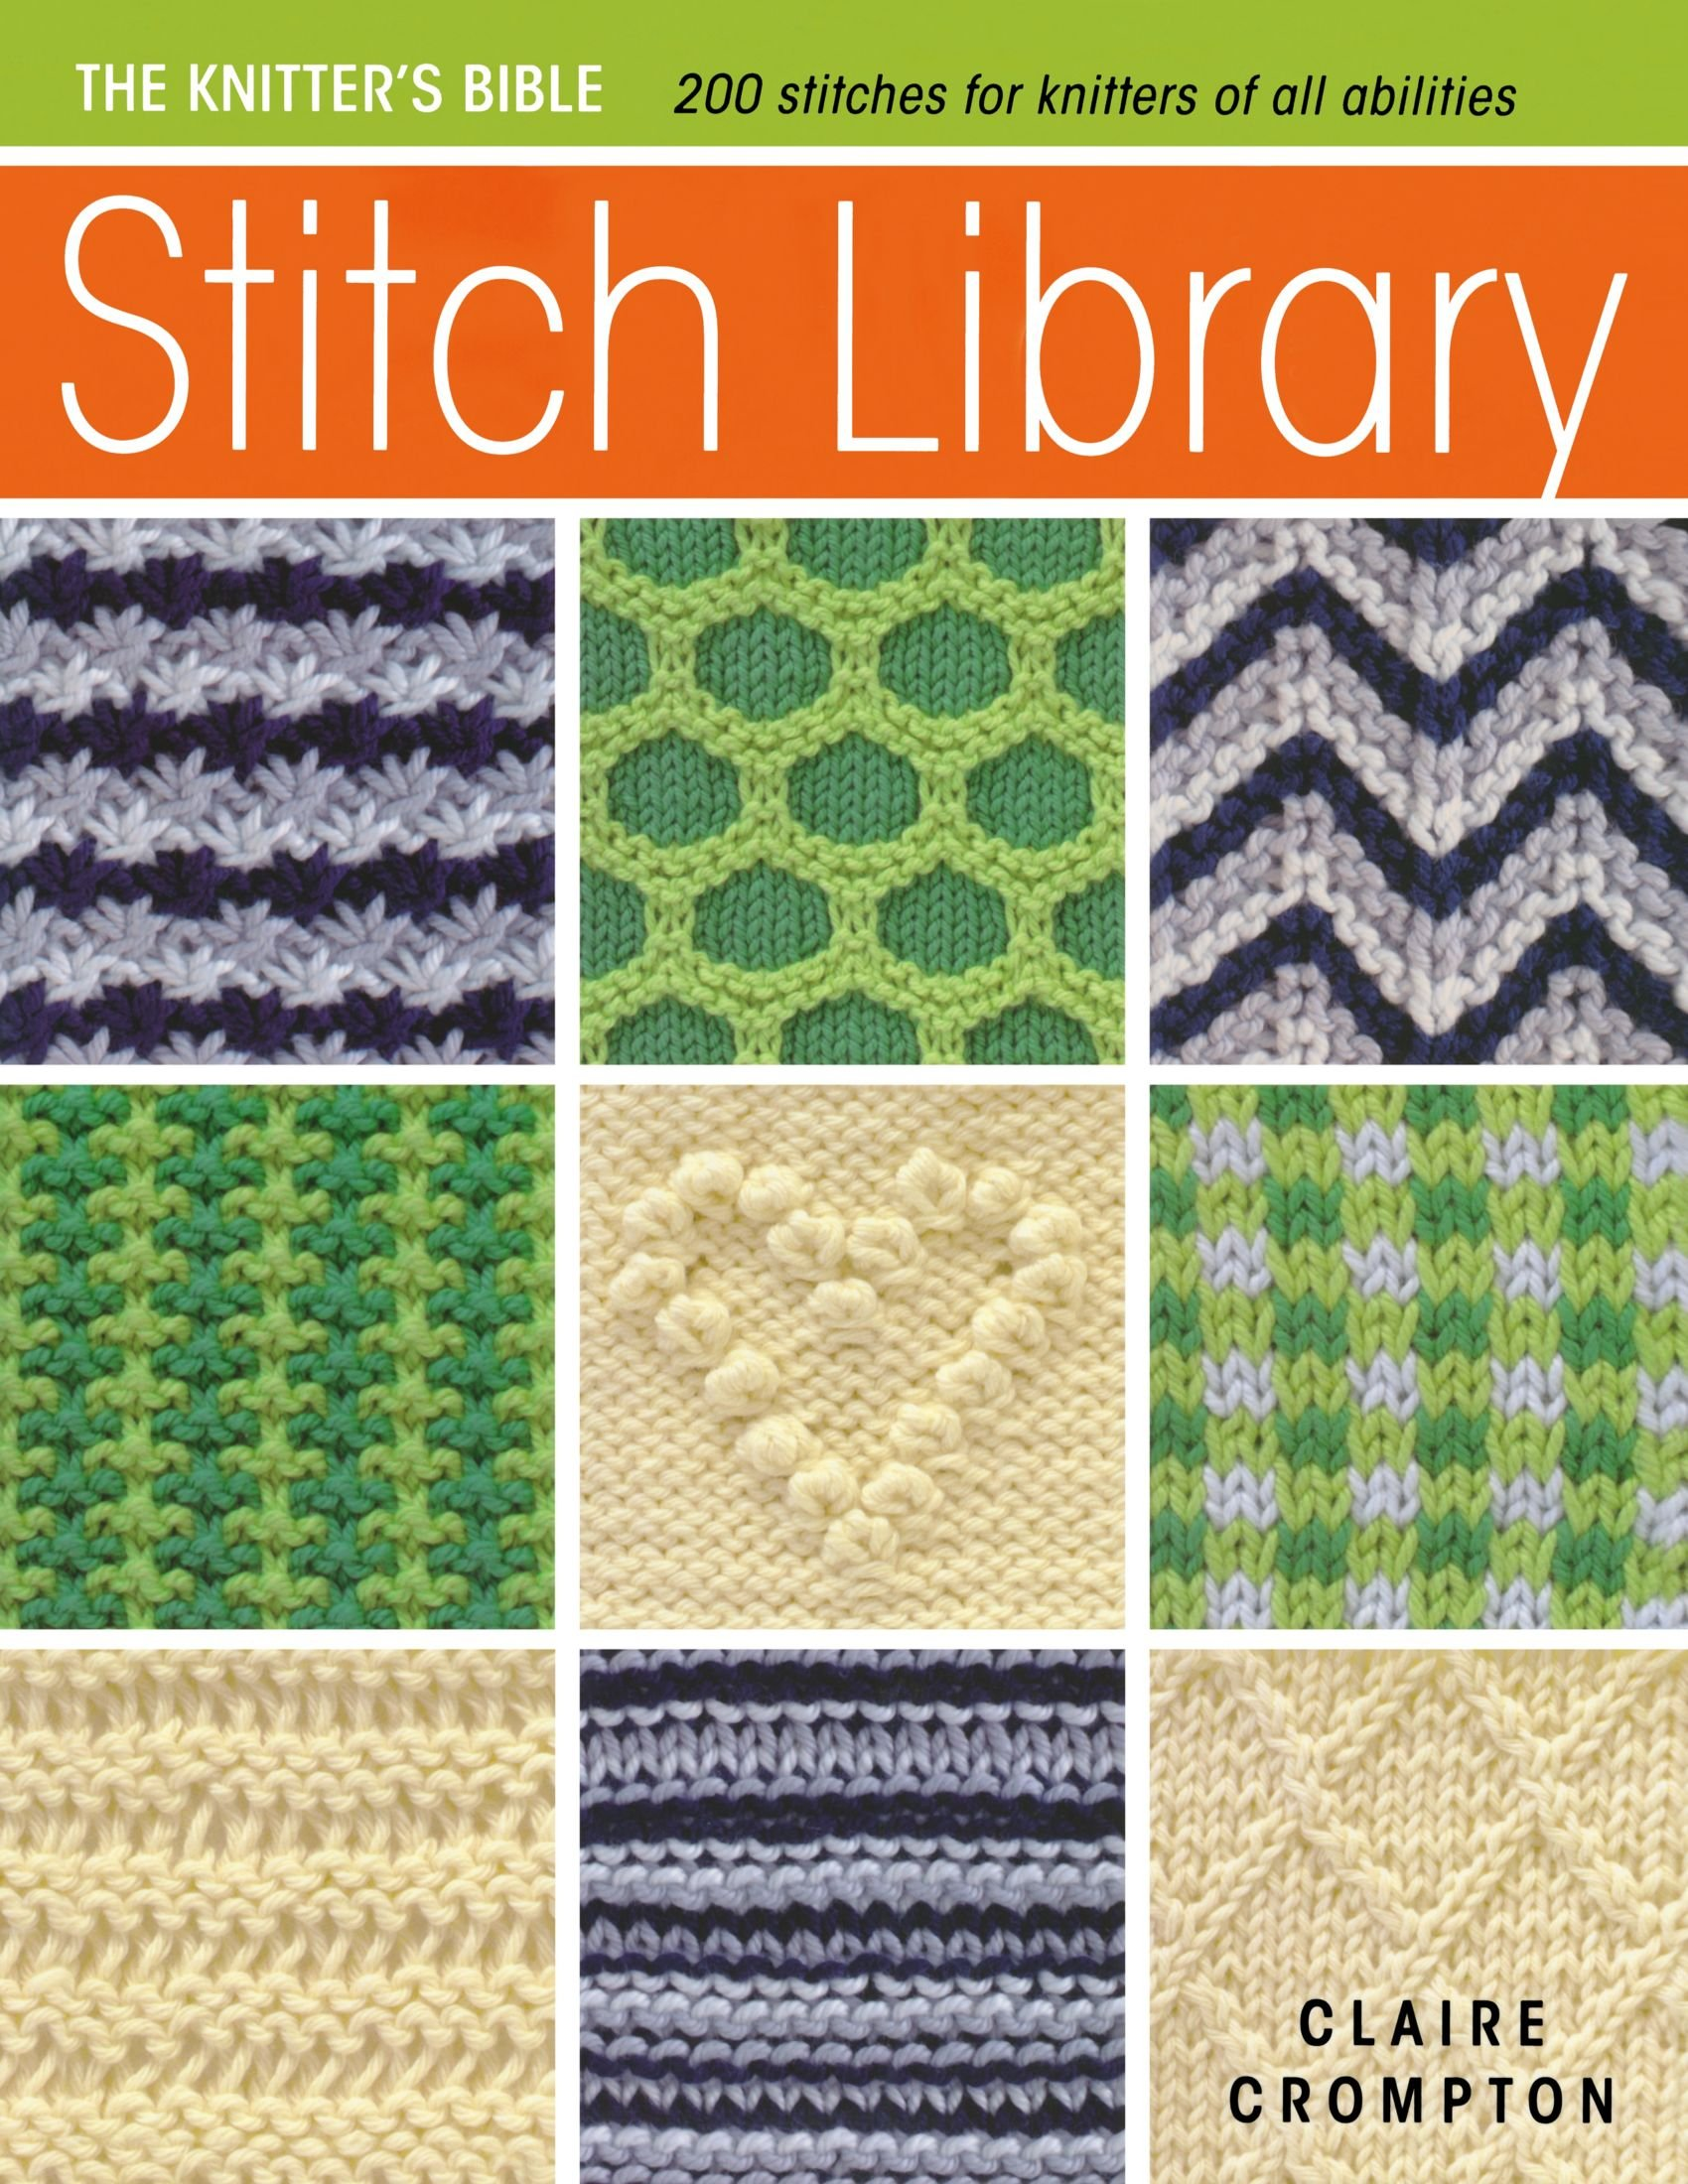 Knitting Stitches Library images